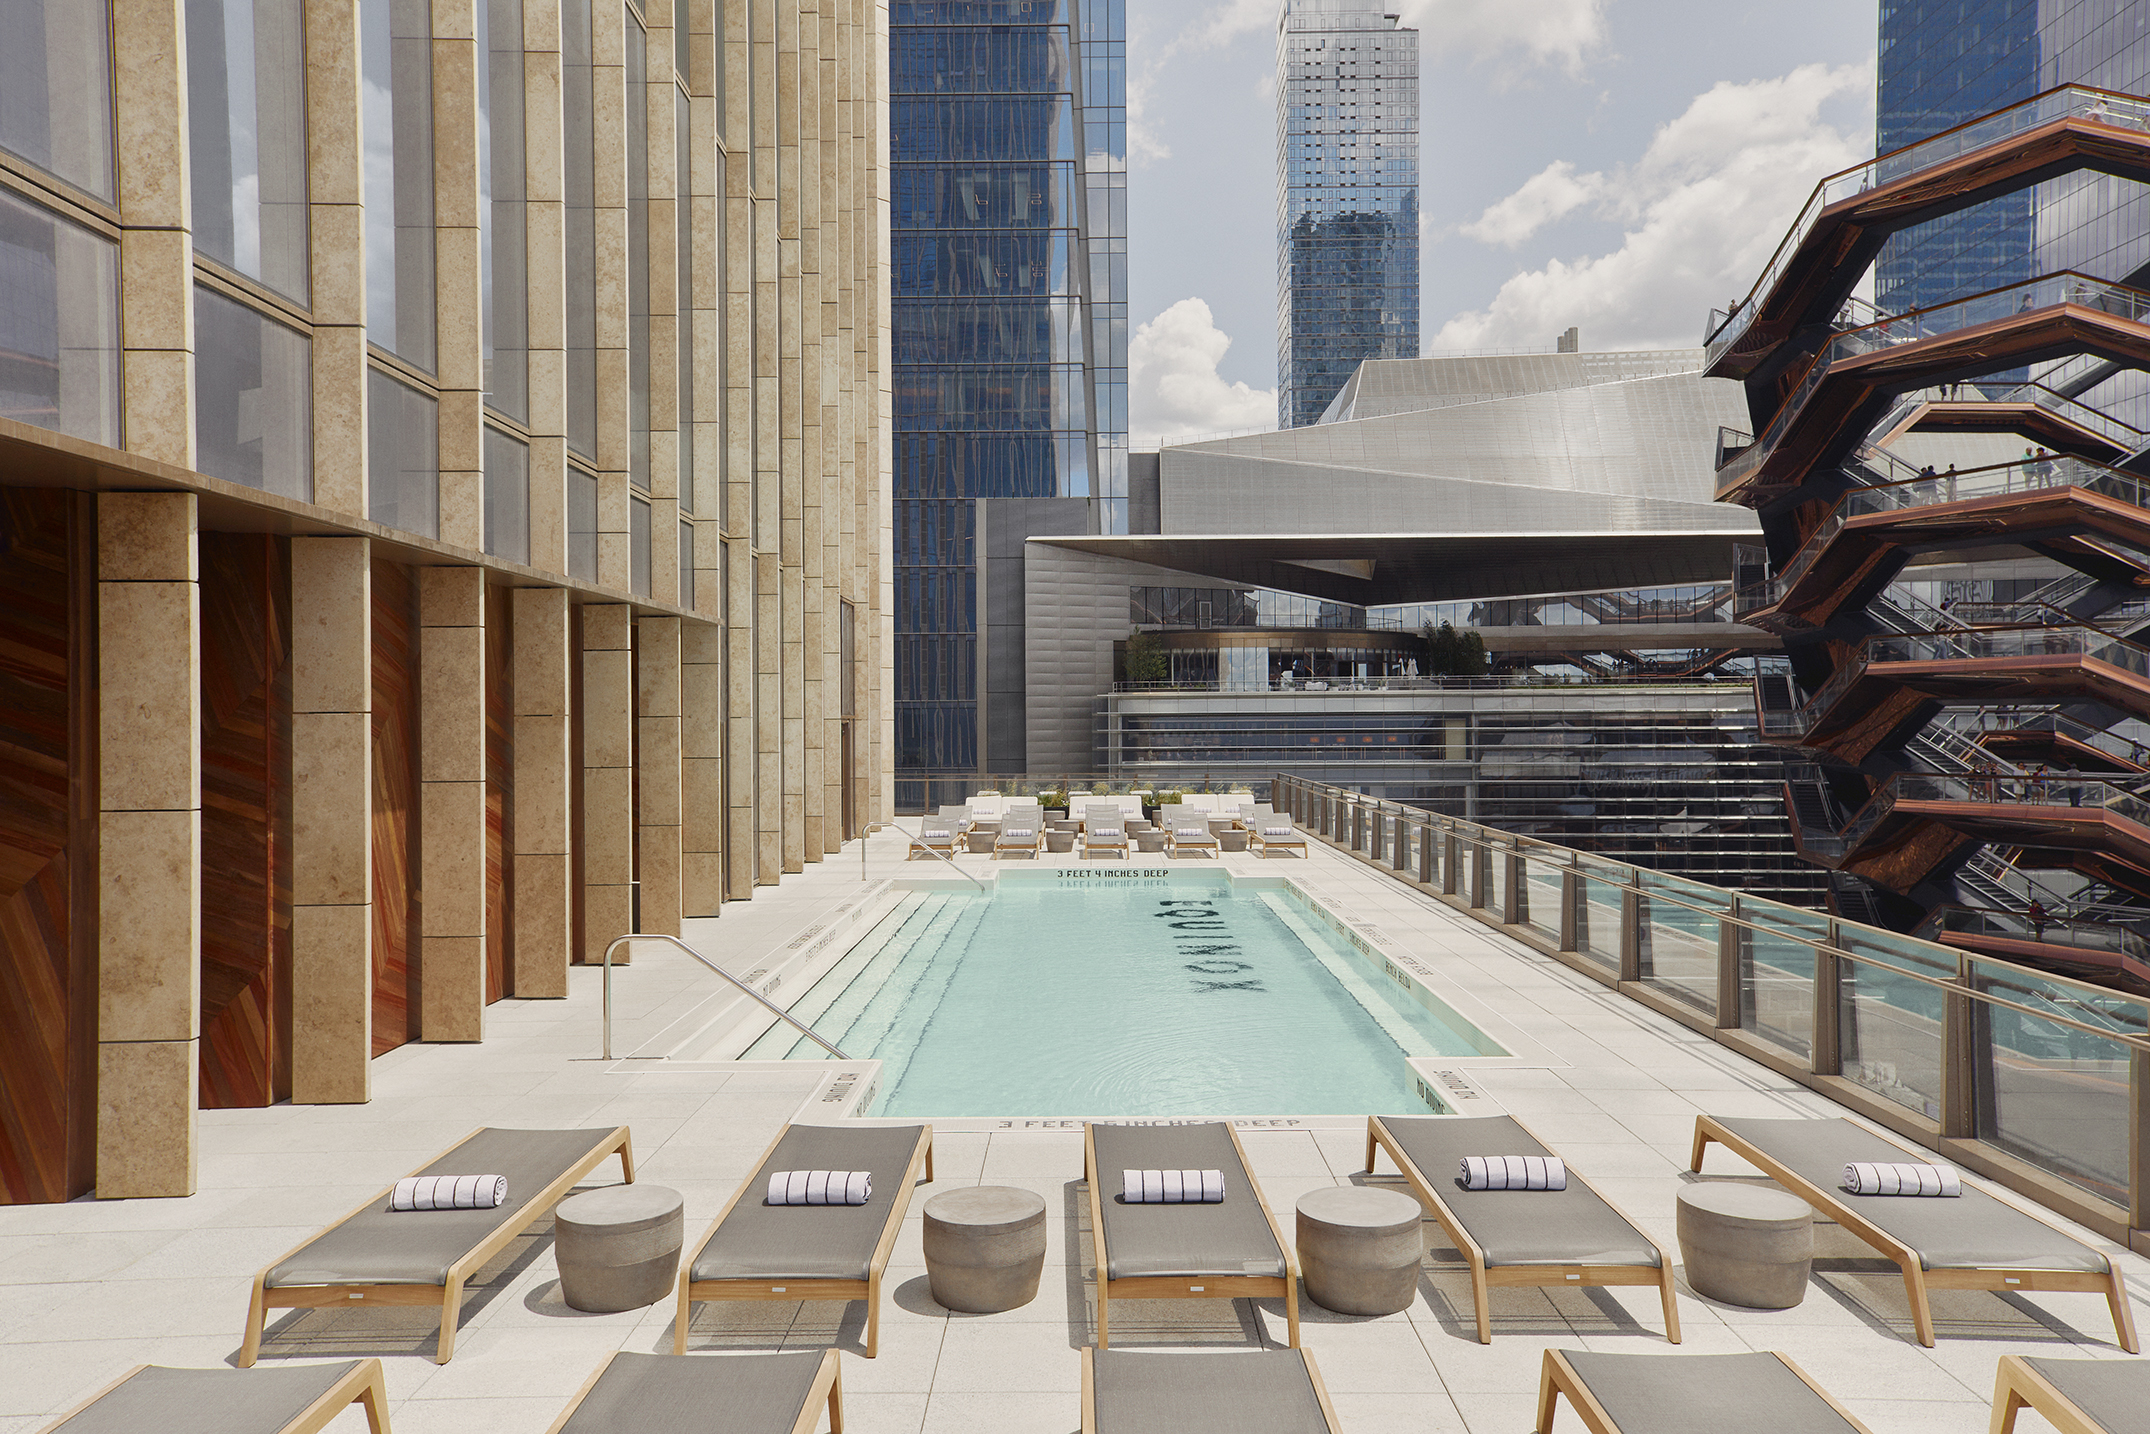 Equinox opens its largest new fitness club at Hudson Yards